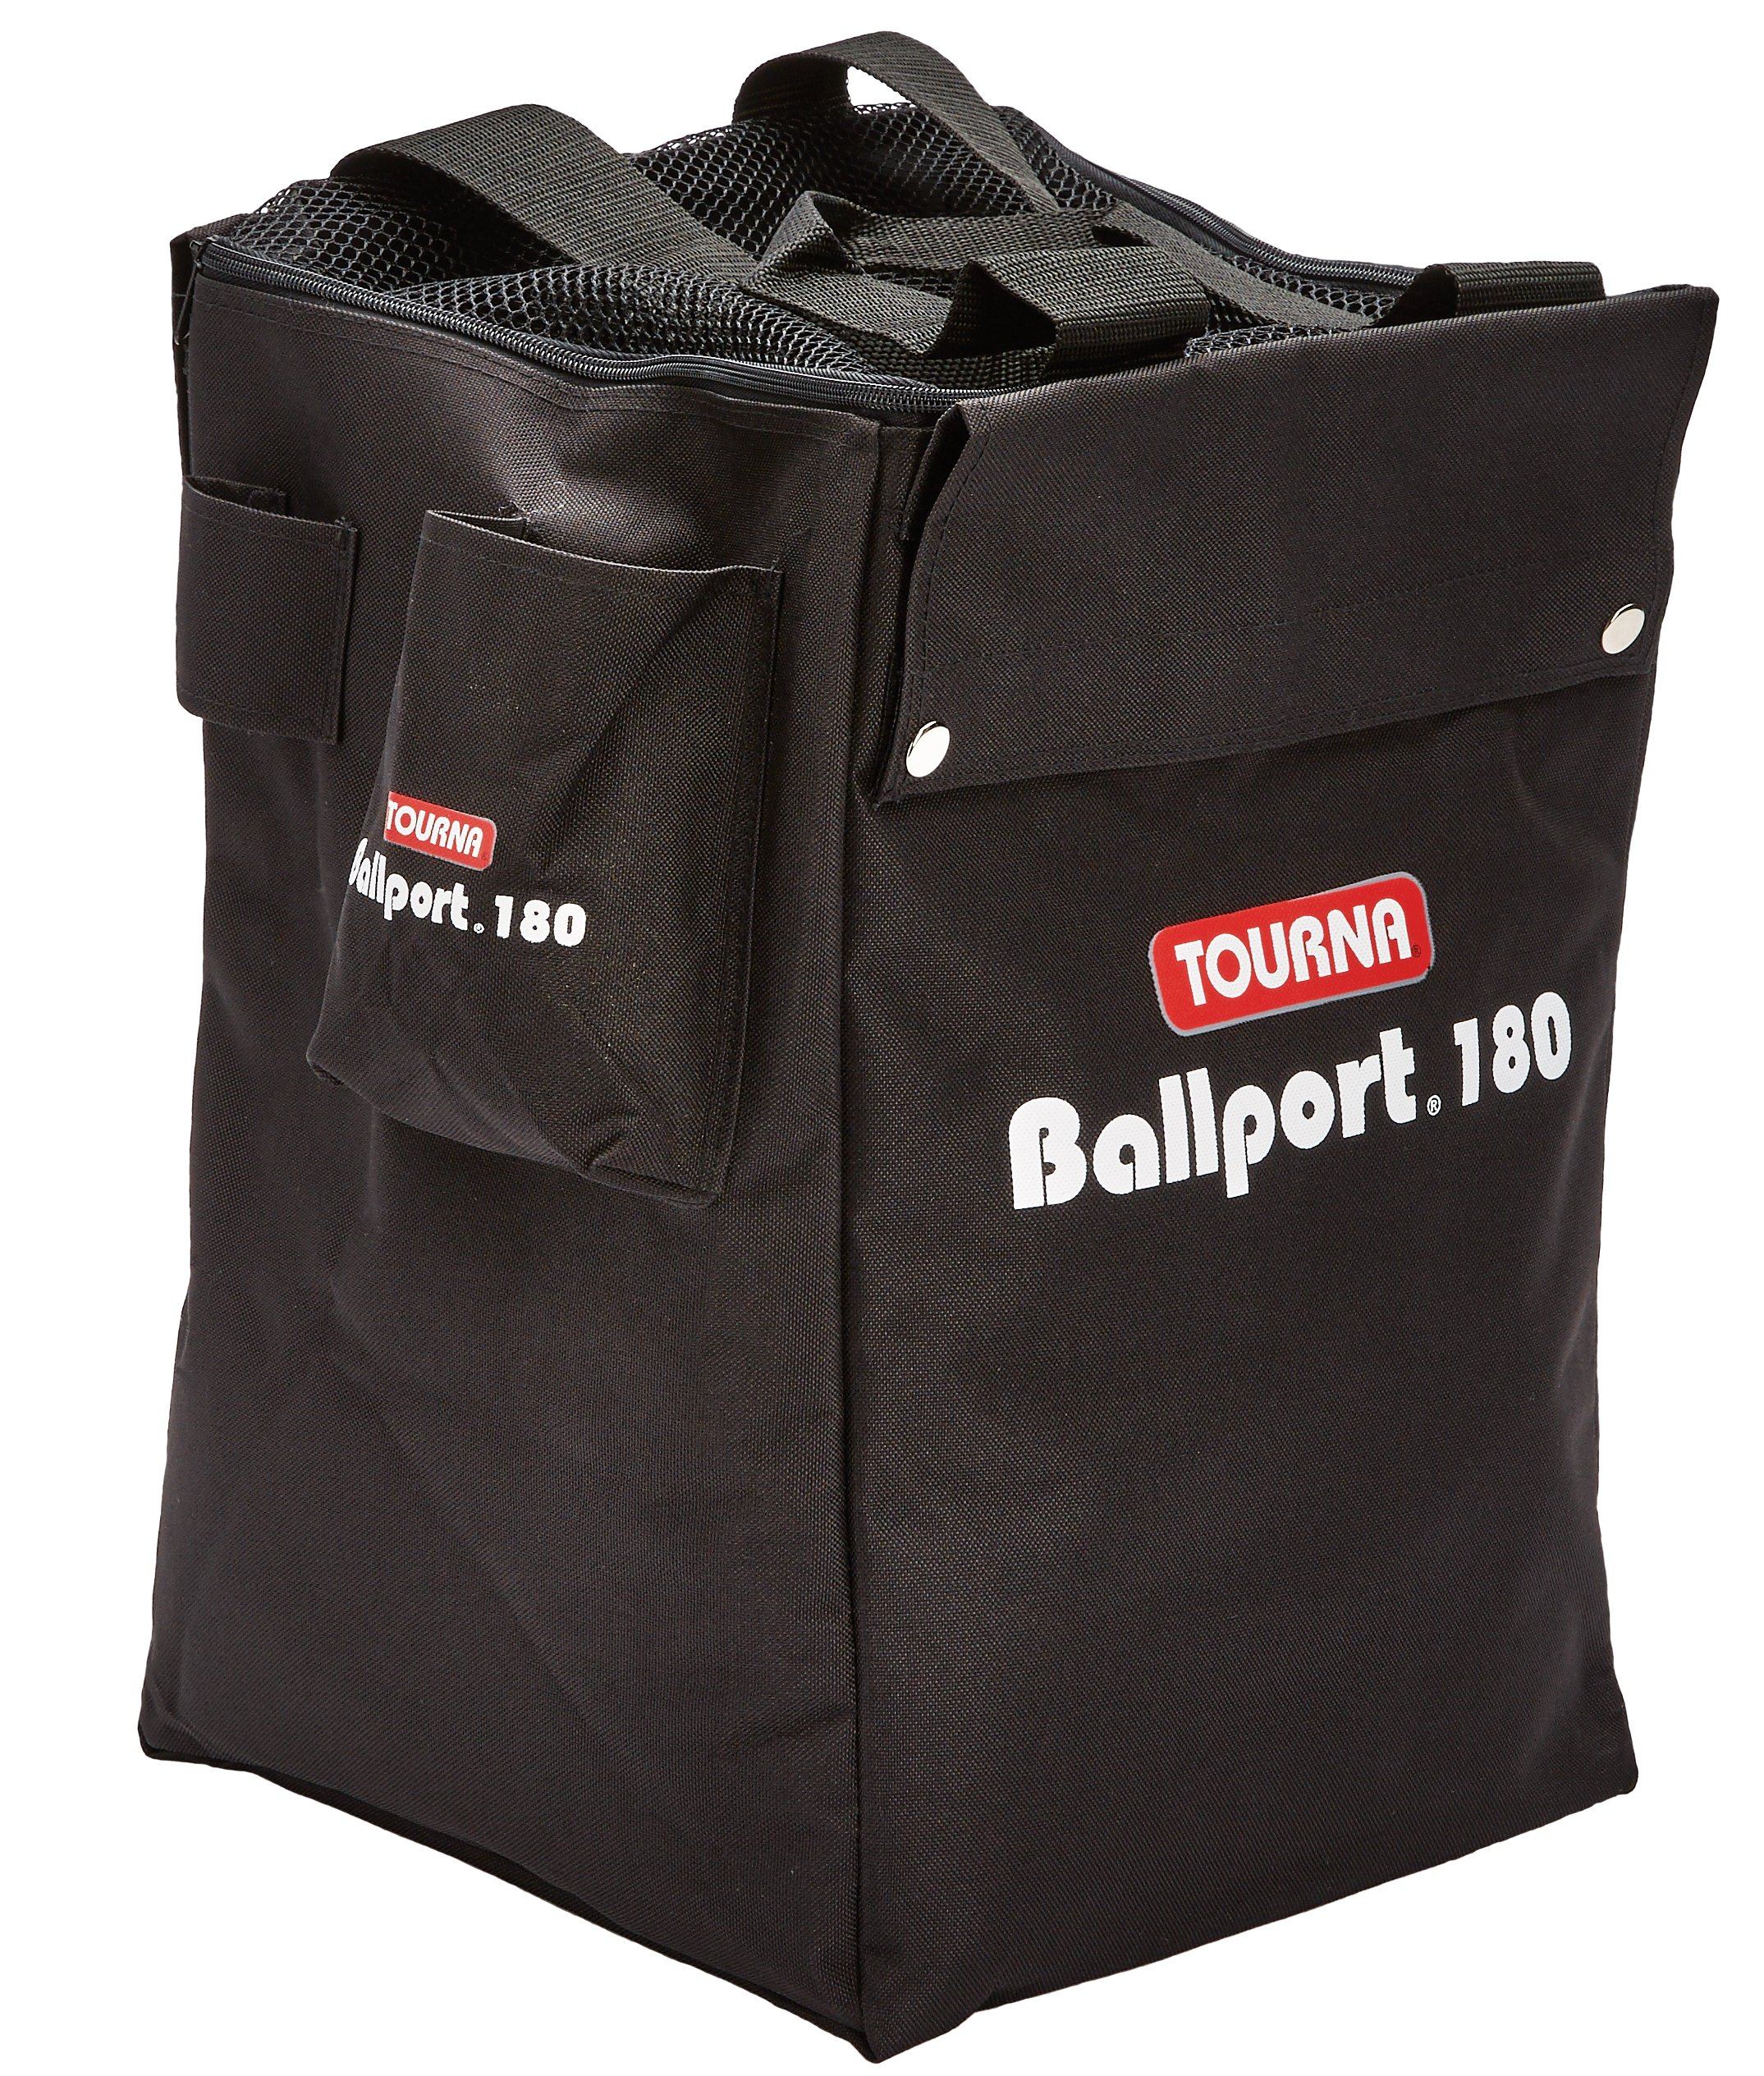 Tourna Ballport Tennis Ball Carry Bag by Tourna